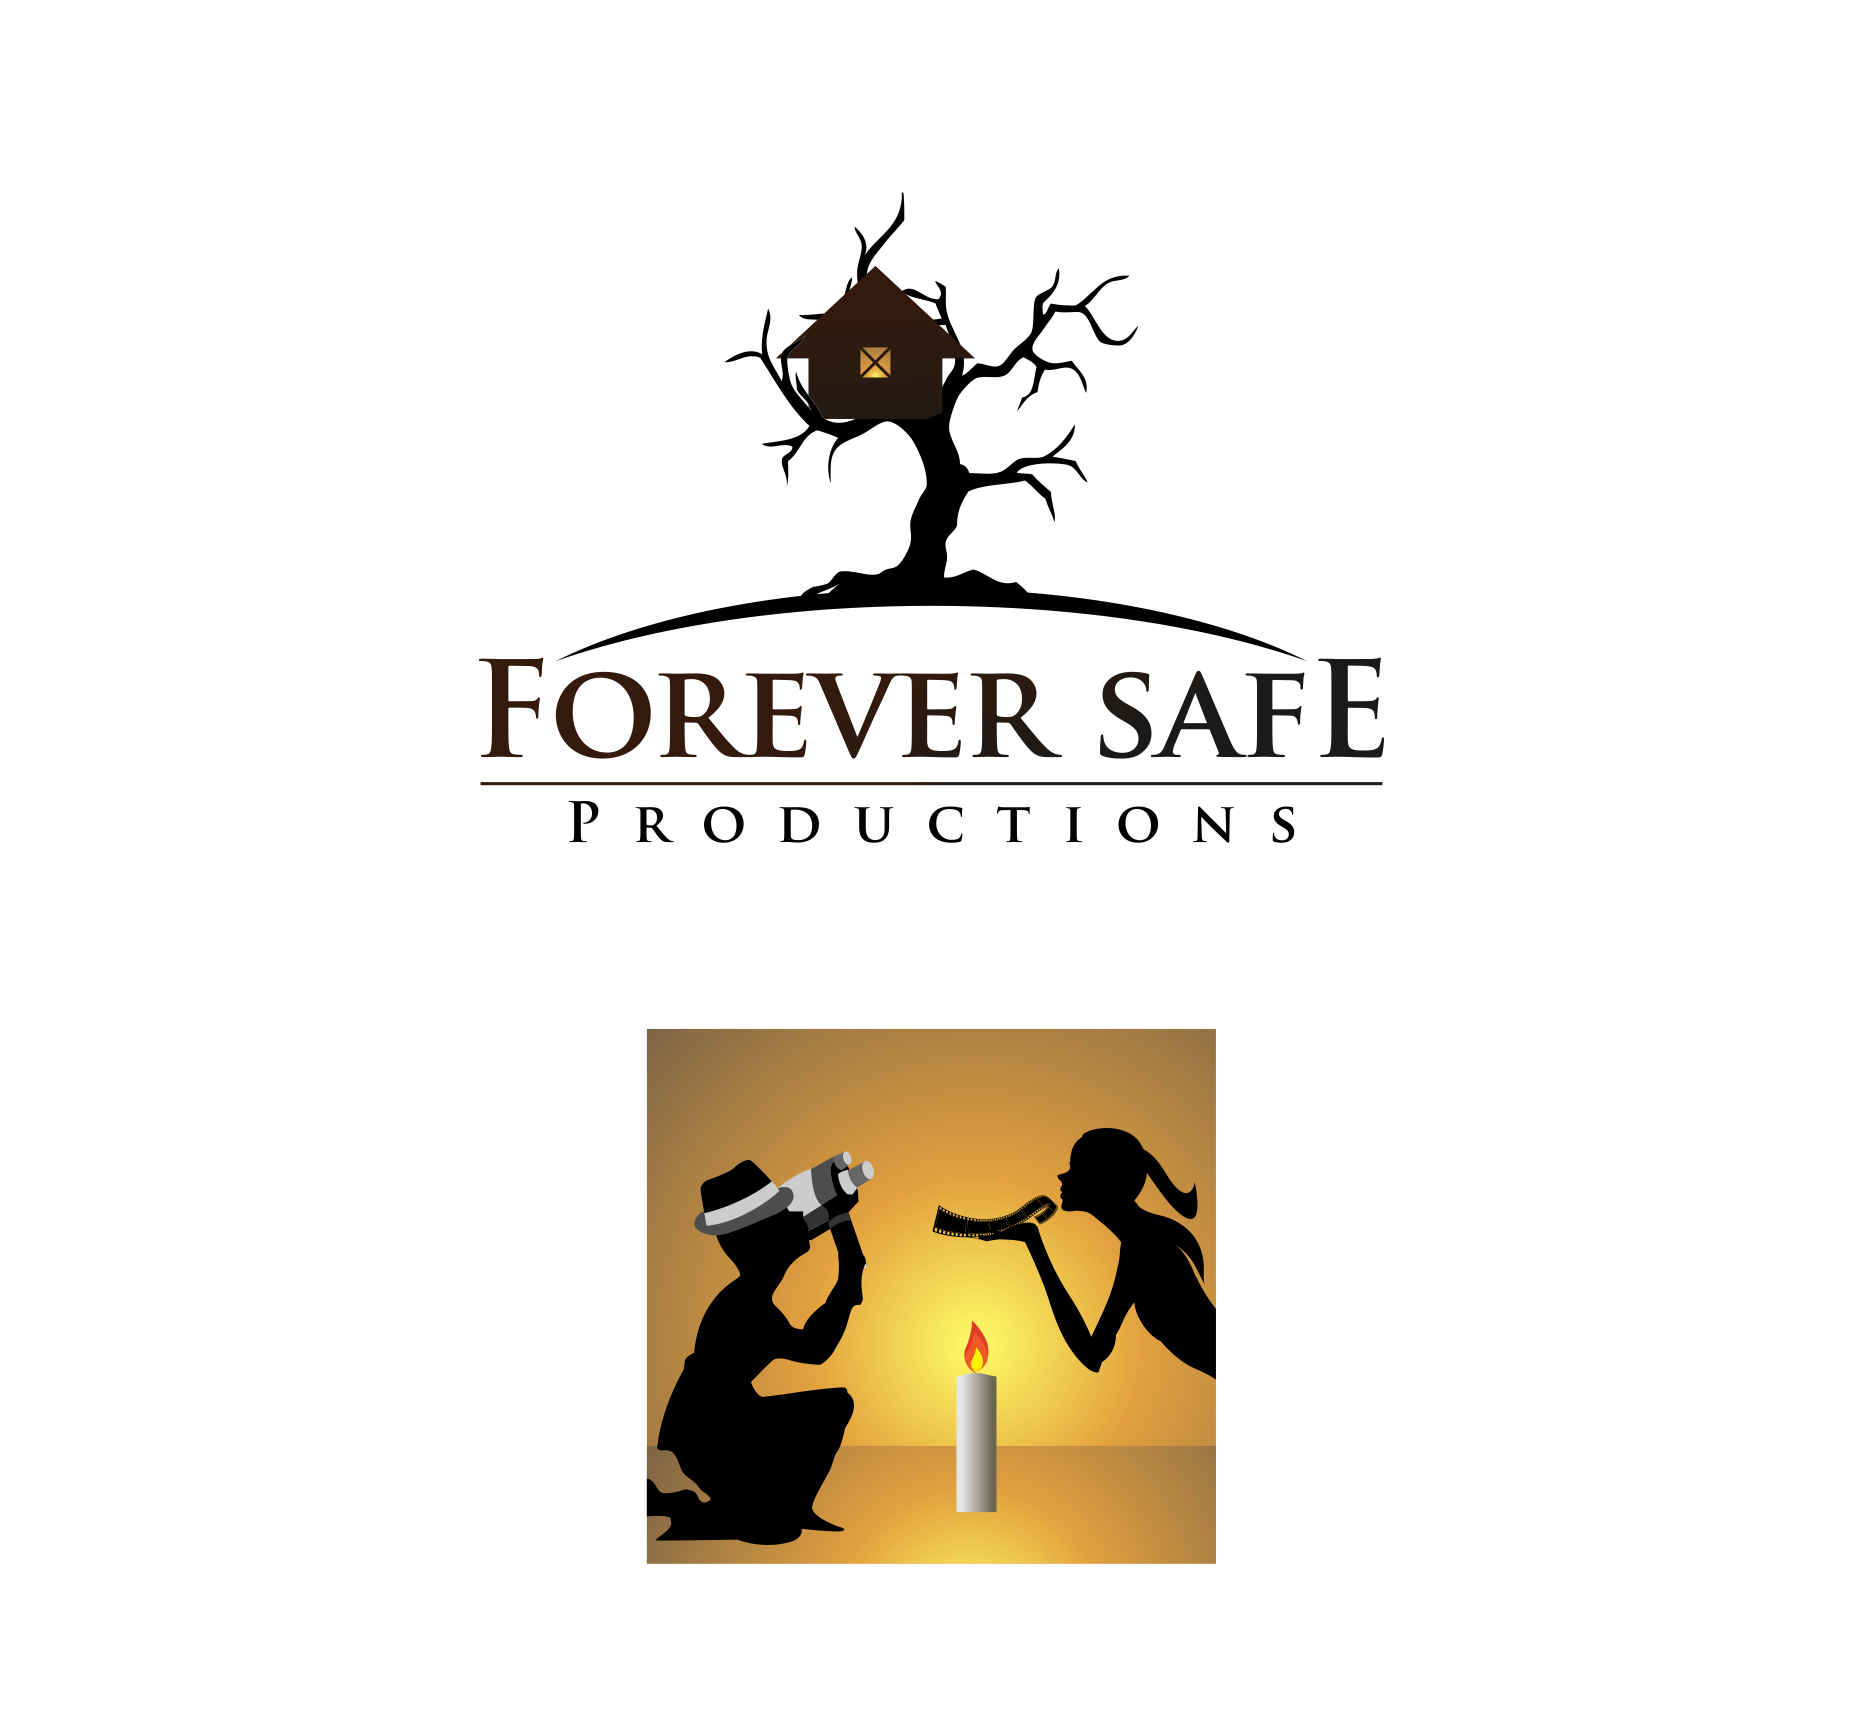 Logo Design by haidu - Entry No. 59 in the Logo Design Contest Inspiring Logo Design for Forever Safe Productions.